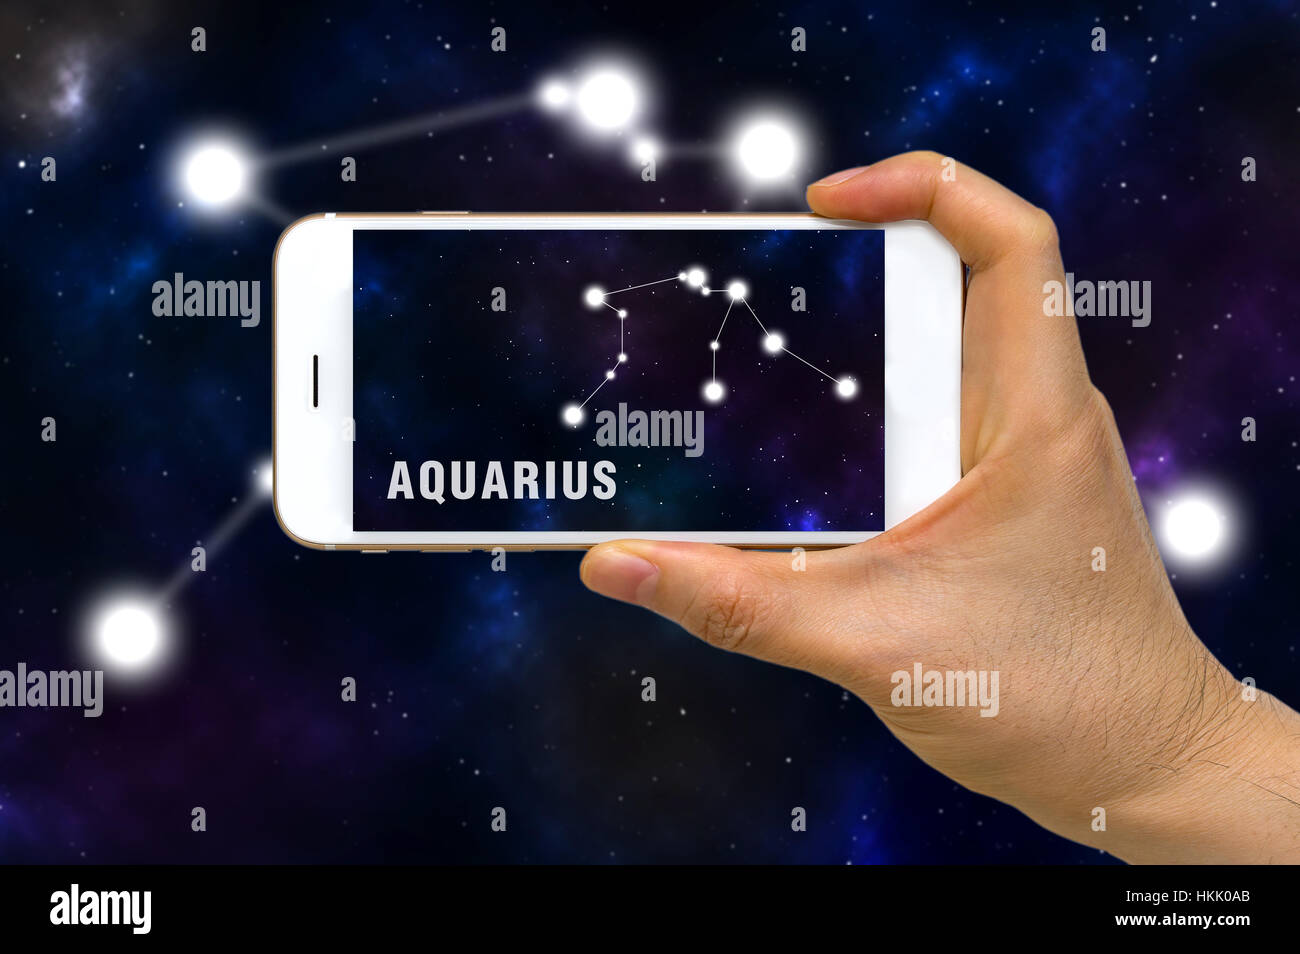 Concept of augmented reality, AR, of Aquarius zodiac constellation app on smartphone. - Stock Image